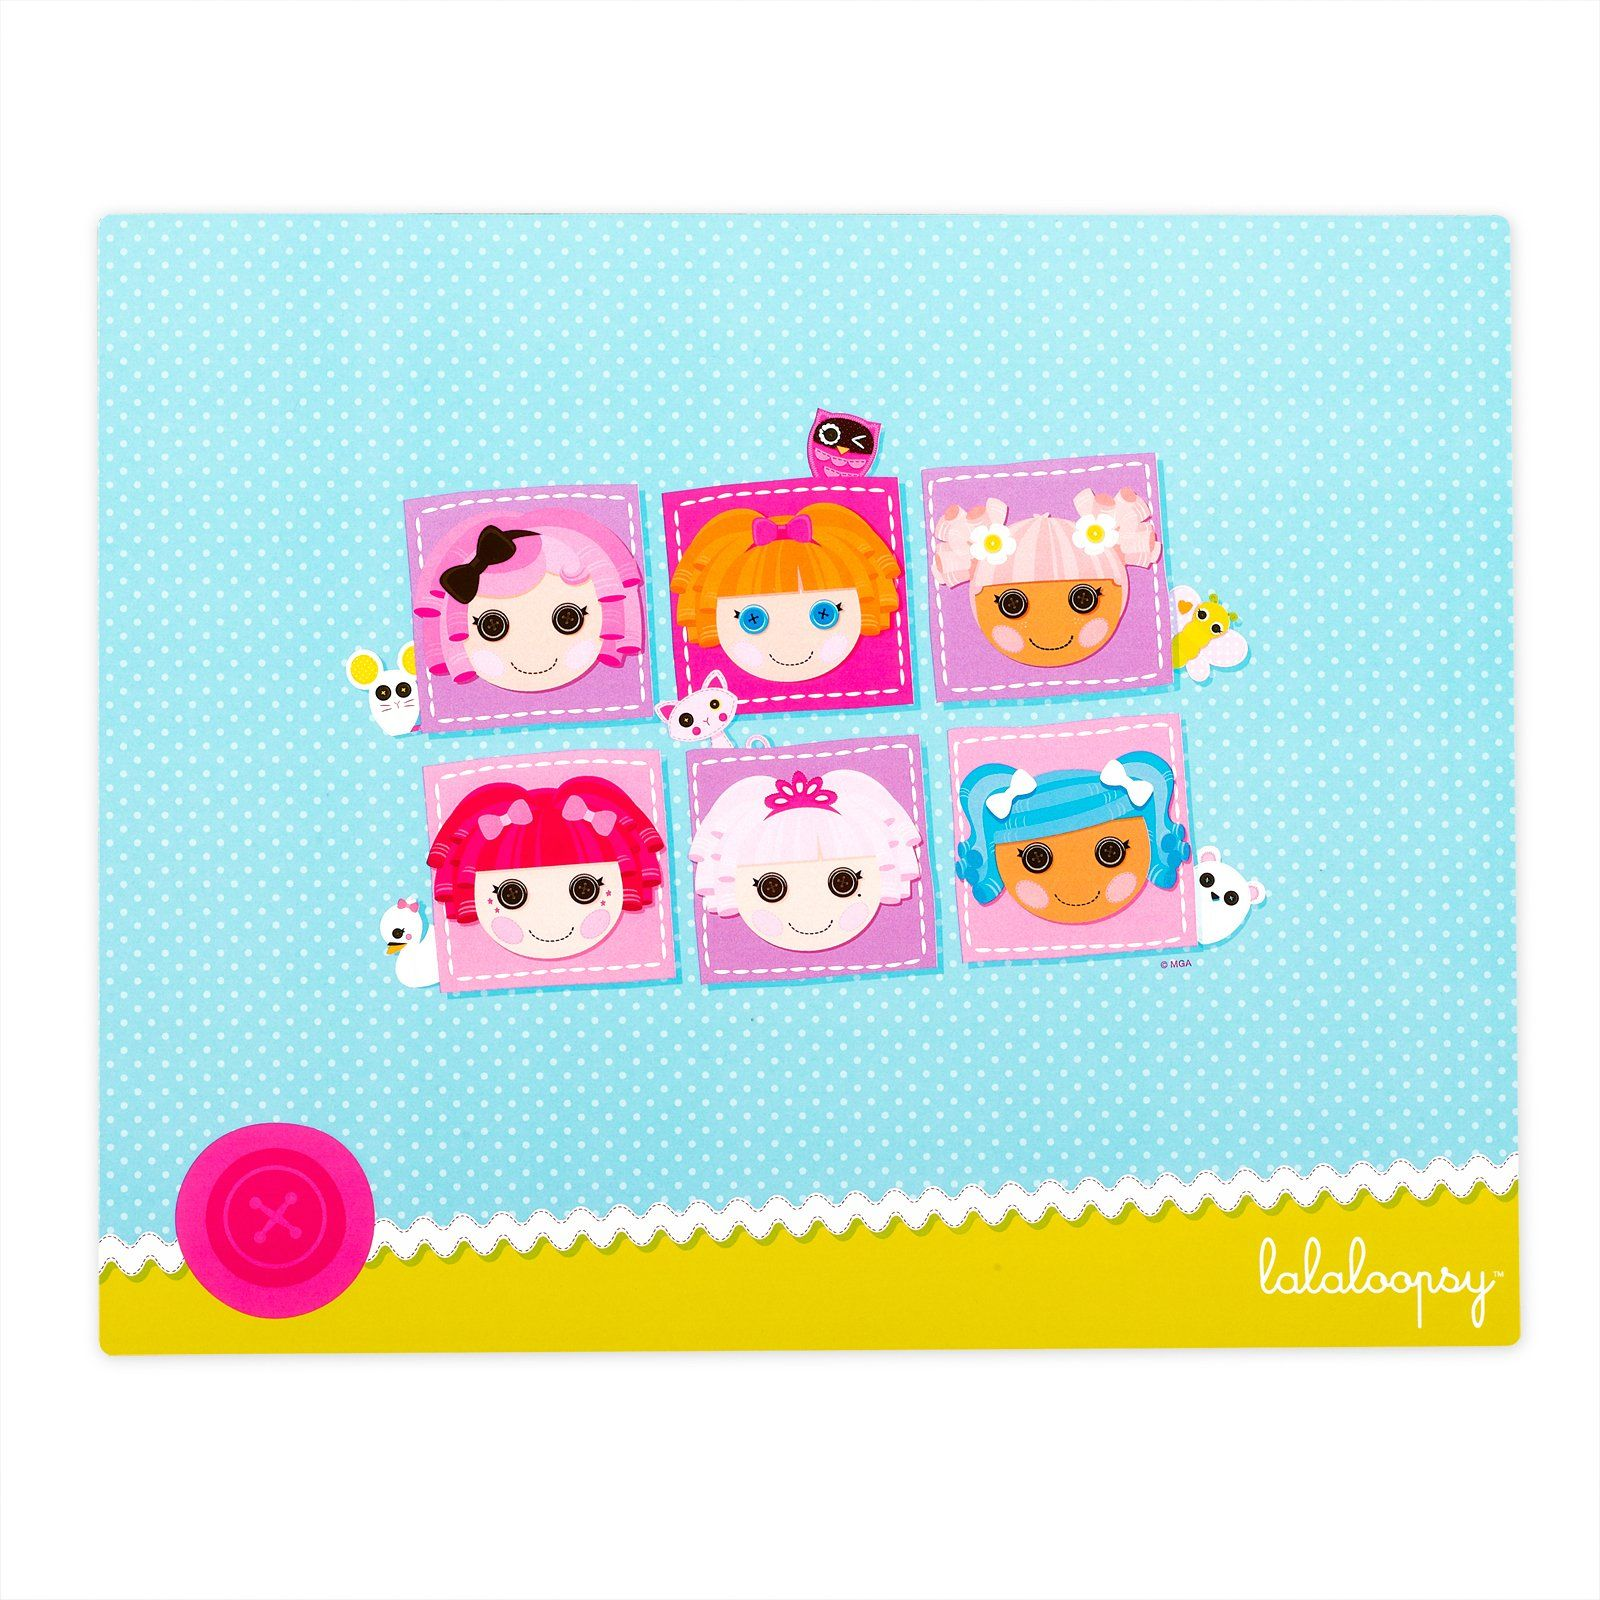 placemats | Kitchen | Pinterest | Lalaloopsy, Activities and Party games